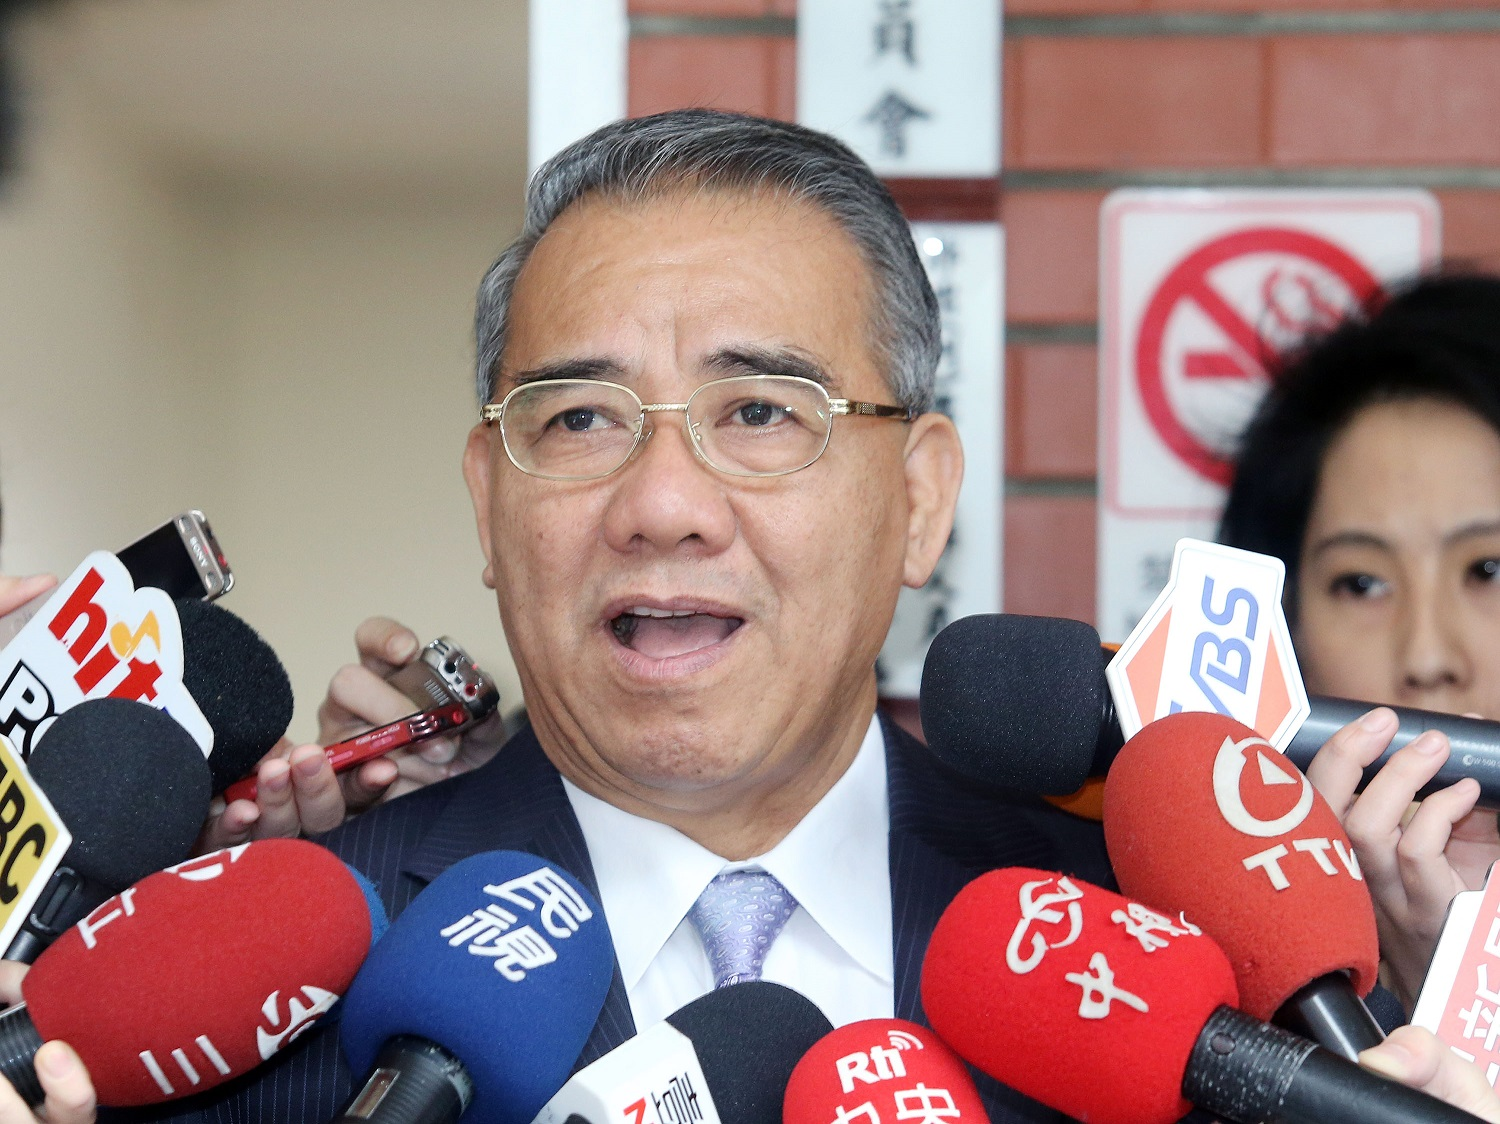 Sufin Siliko (Liao Kuo-tung,廖國棟), the KMT's legislative caucus whip, an Amis aborigine, called on Hung to step down.